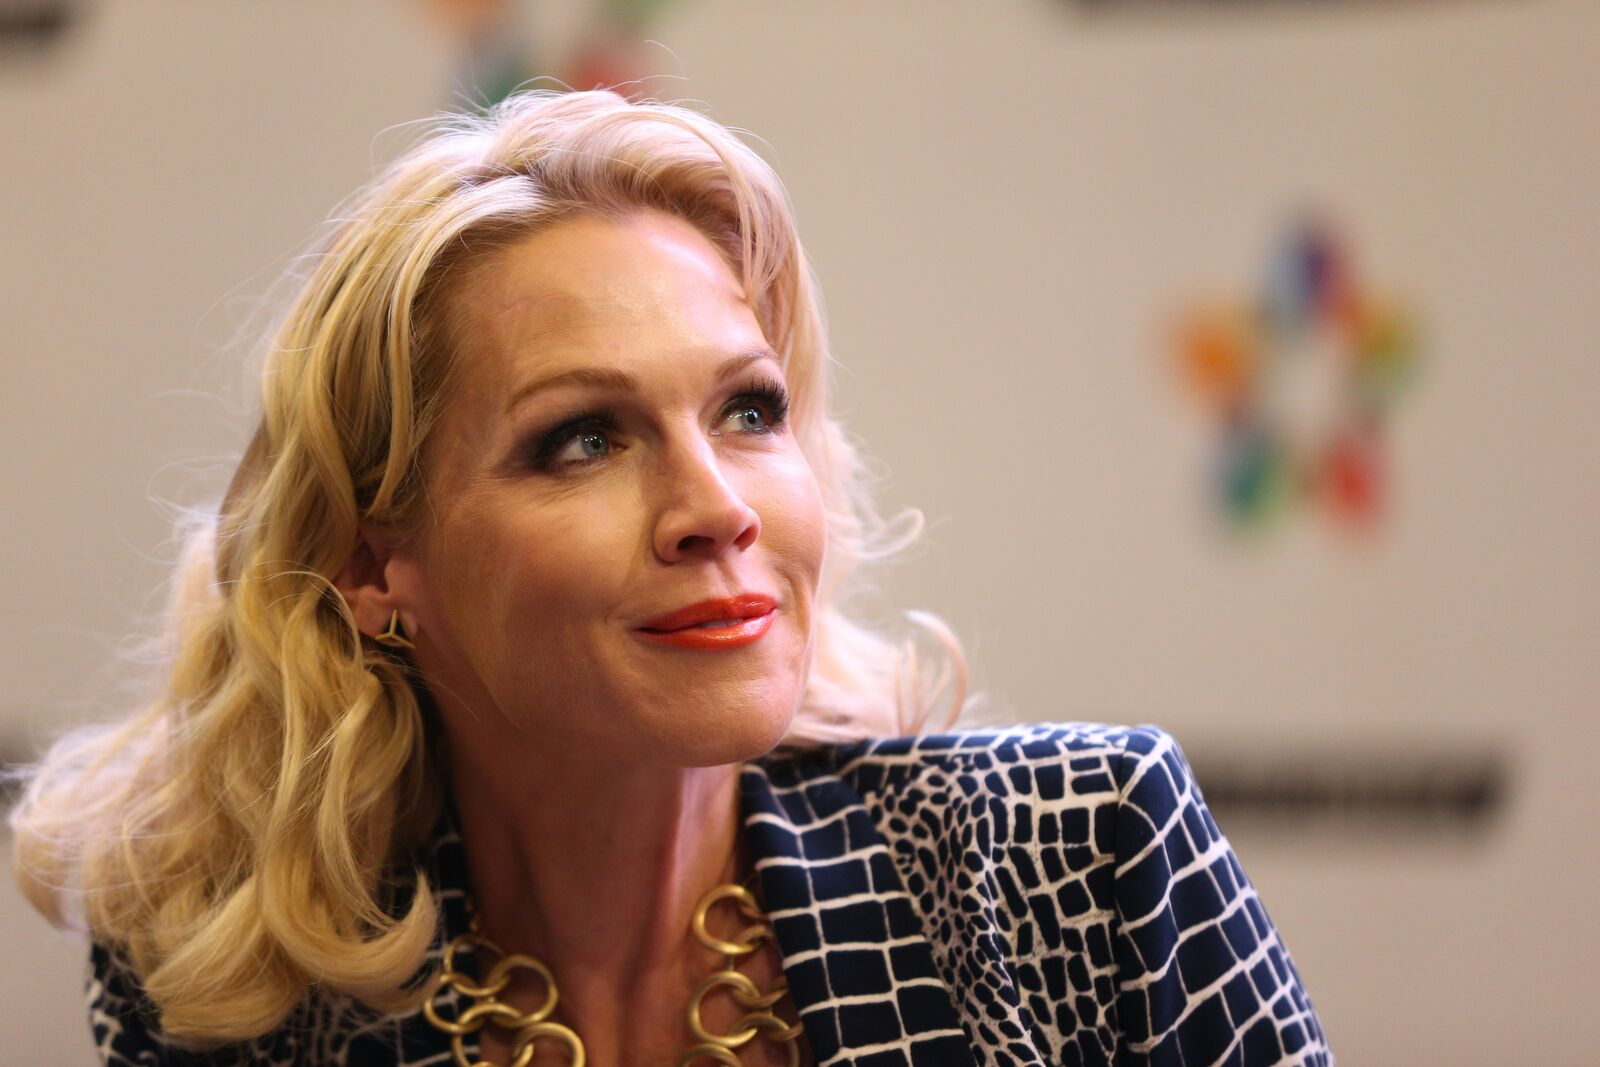 """ctress Jennie Garth signs copies of her book """"Deep Thoughts from a Hollywood Blonde"""" at Mall of America on March 7, 2014 in Bloomington, Minnesota 